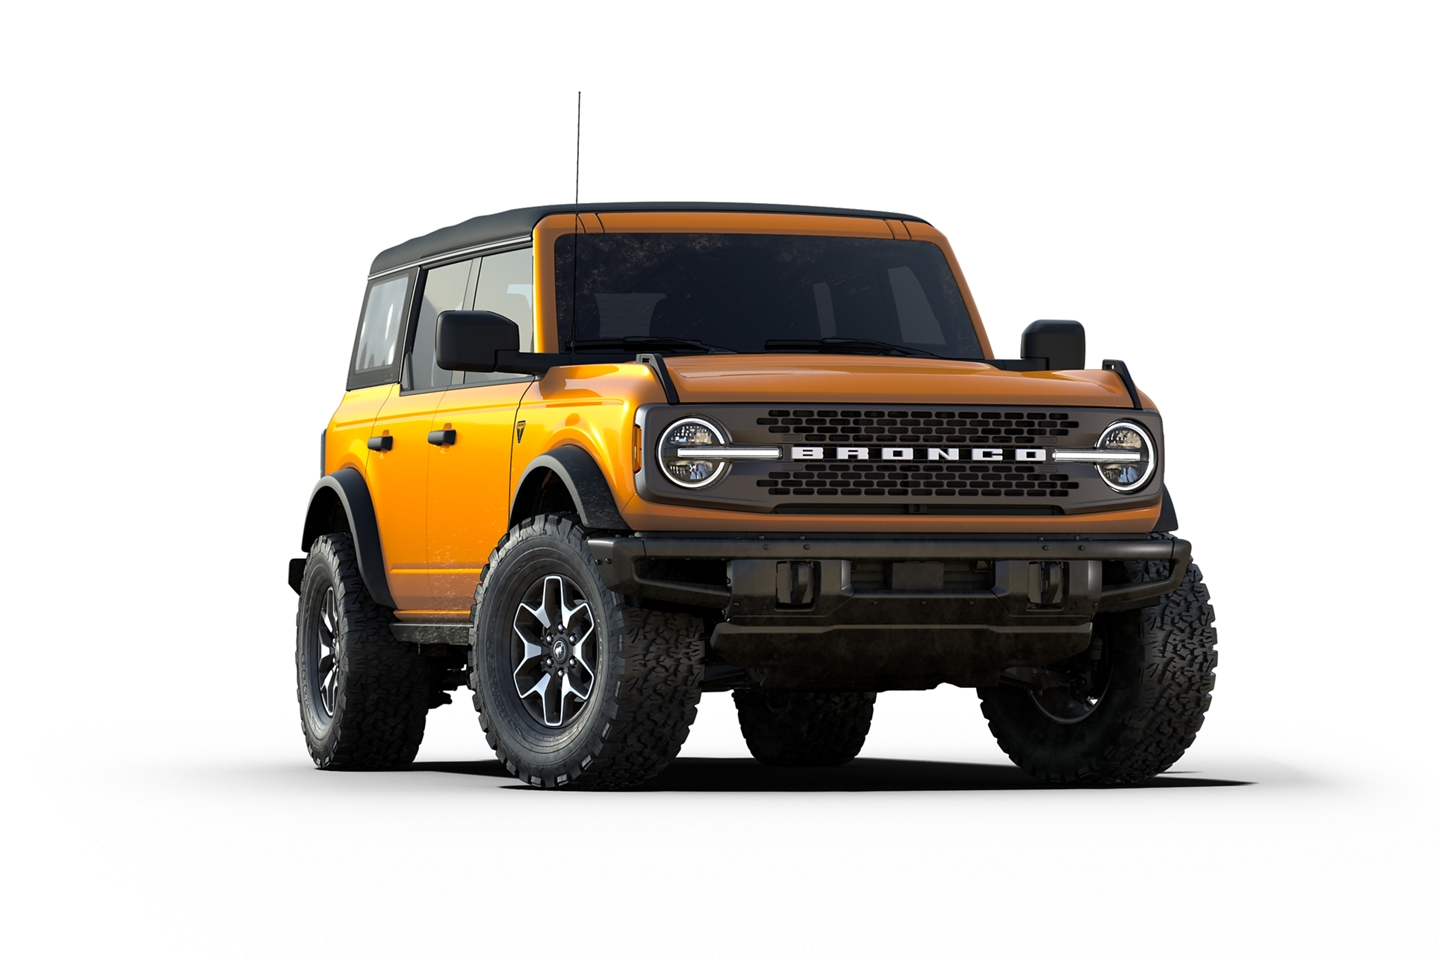 2021 Ford Bronco Badlands Series